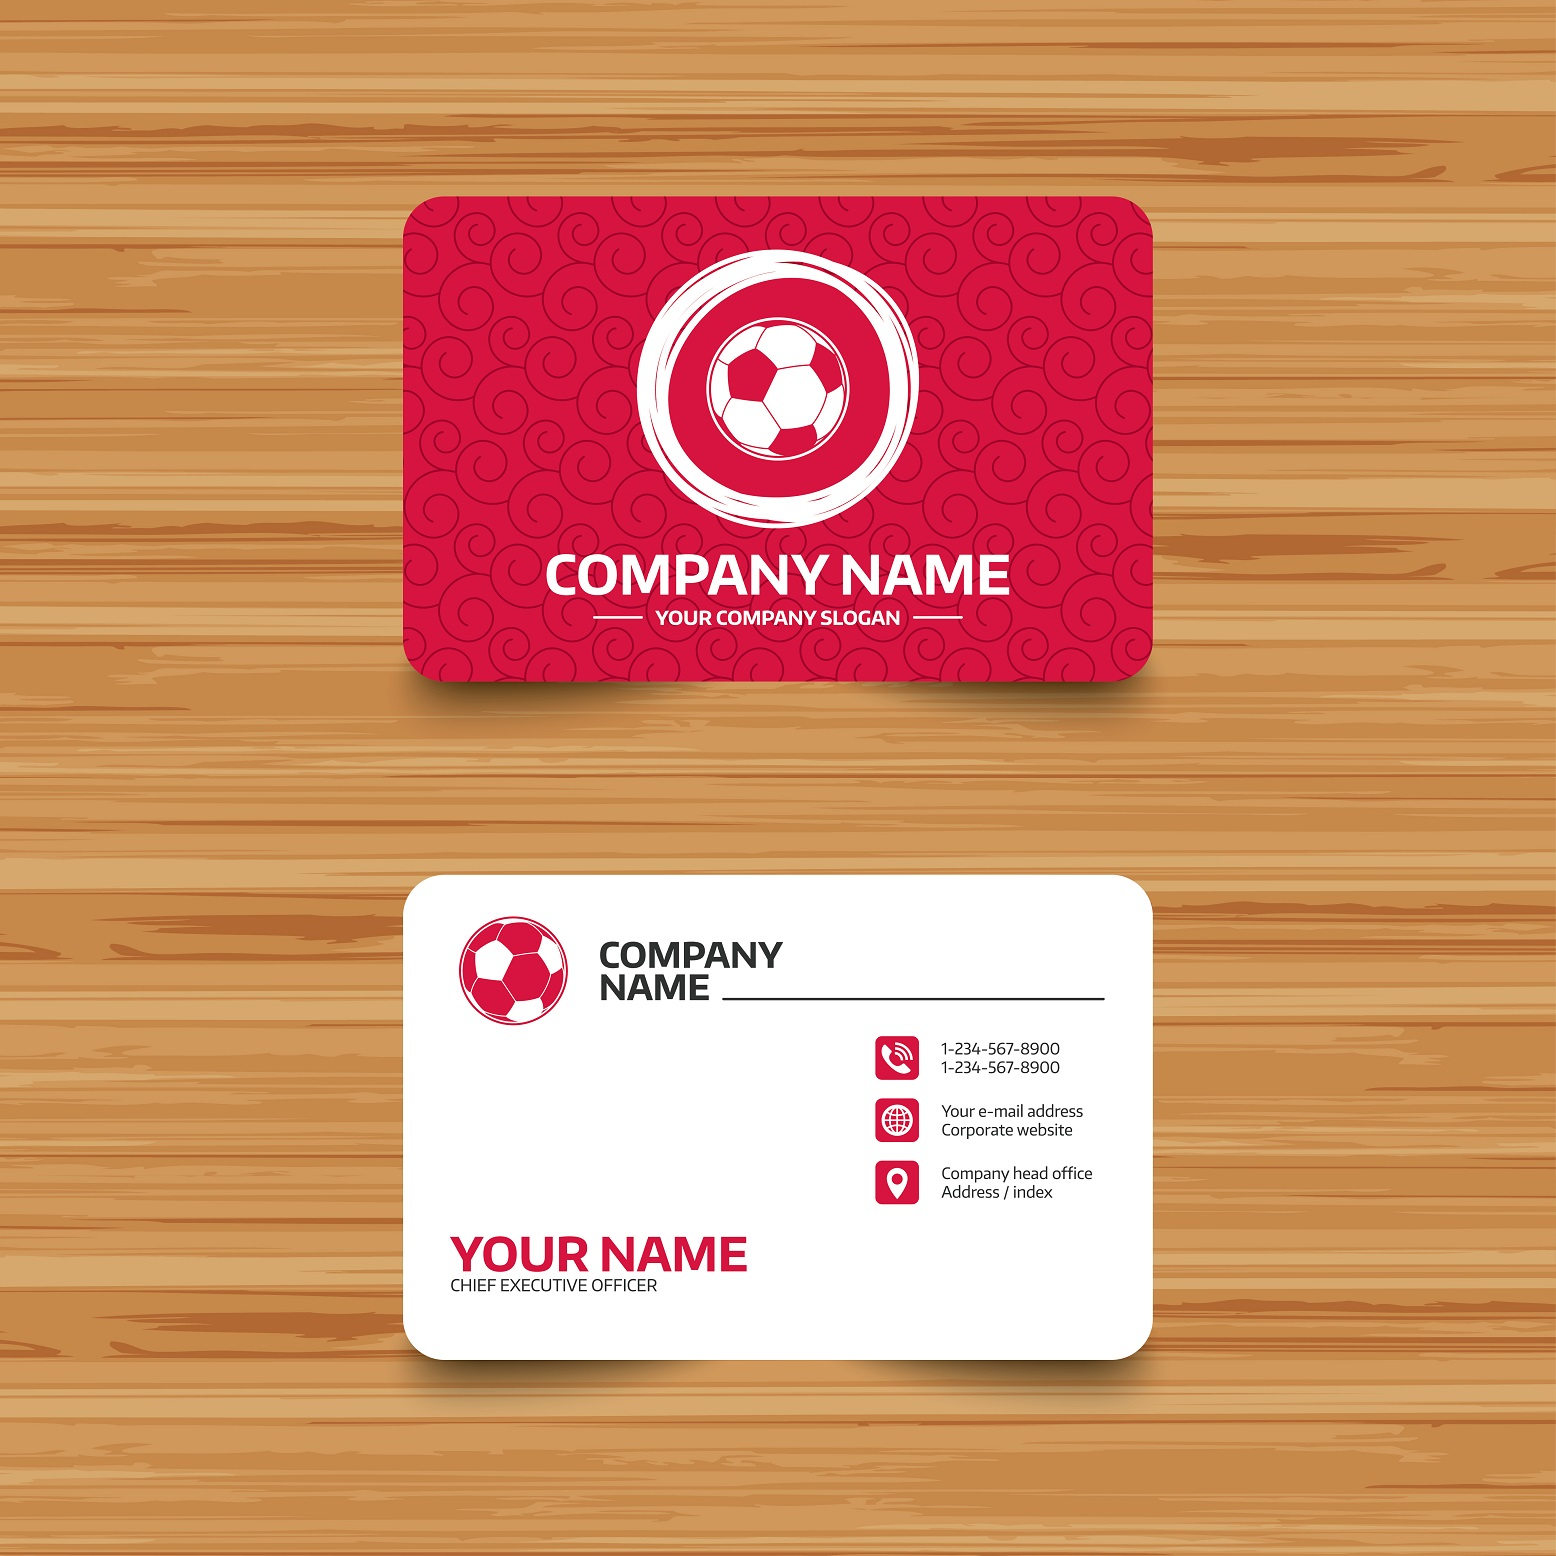 Business card printing service melbourne affordable printing in business cards reheart Choice Image